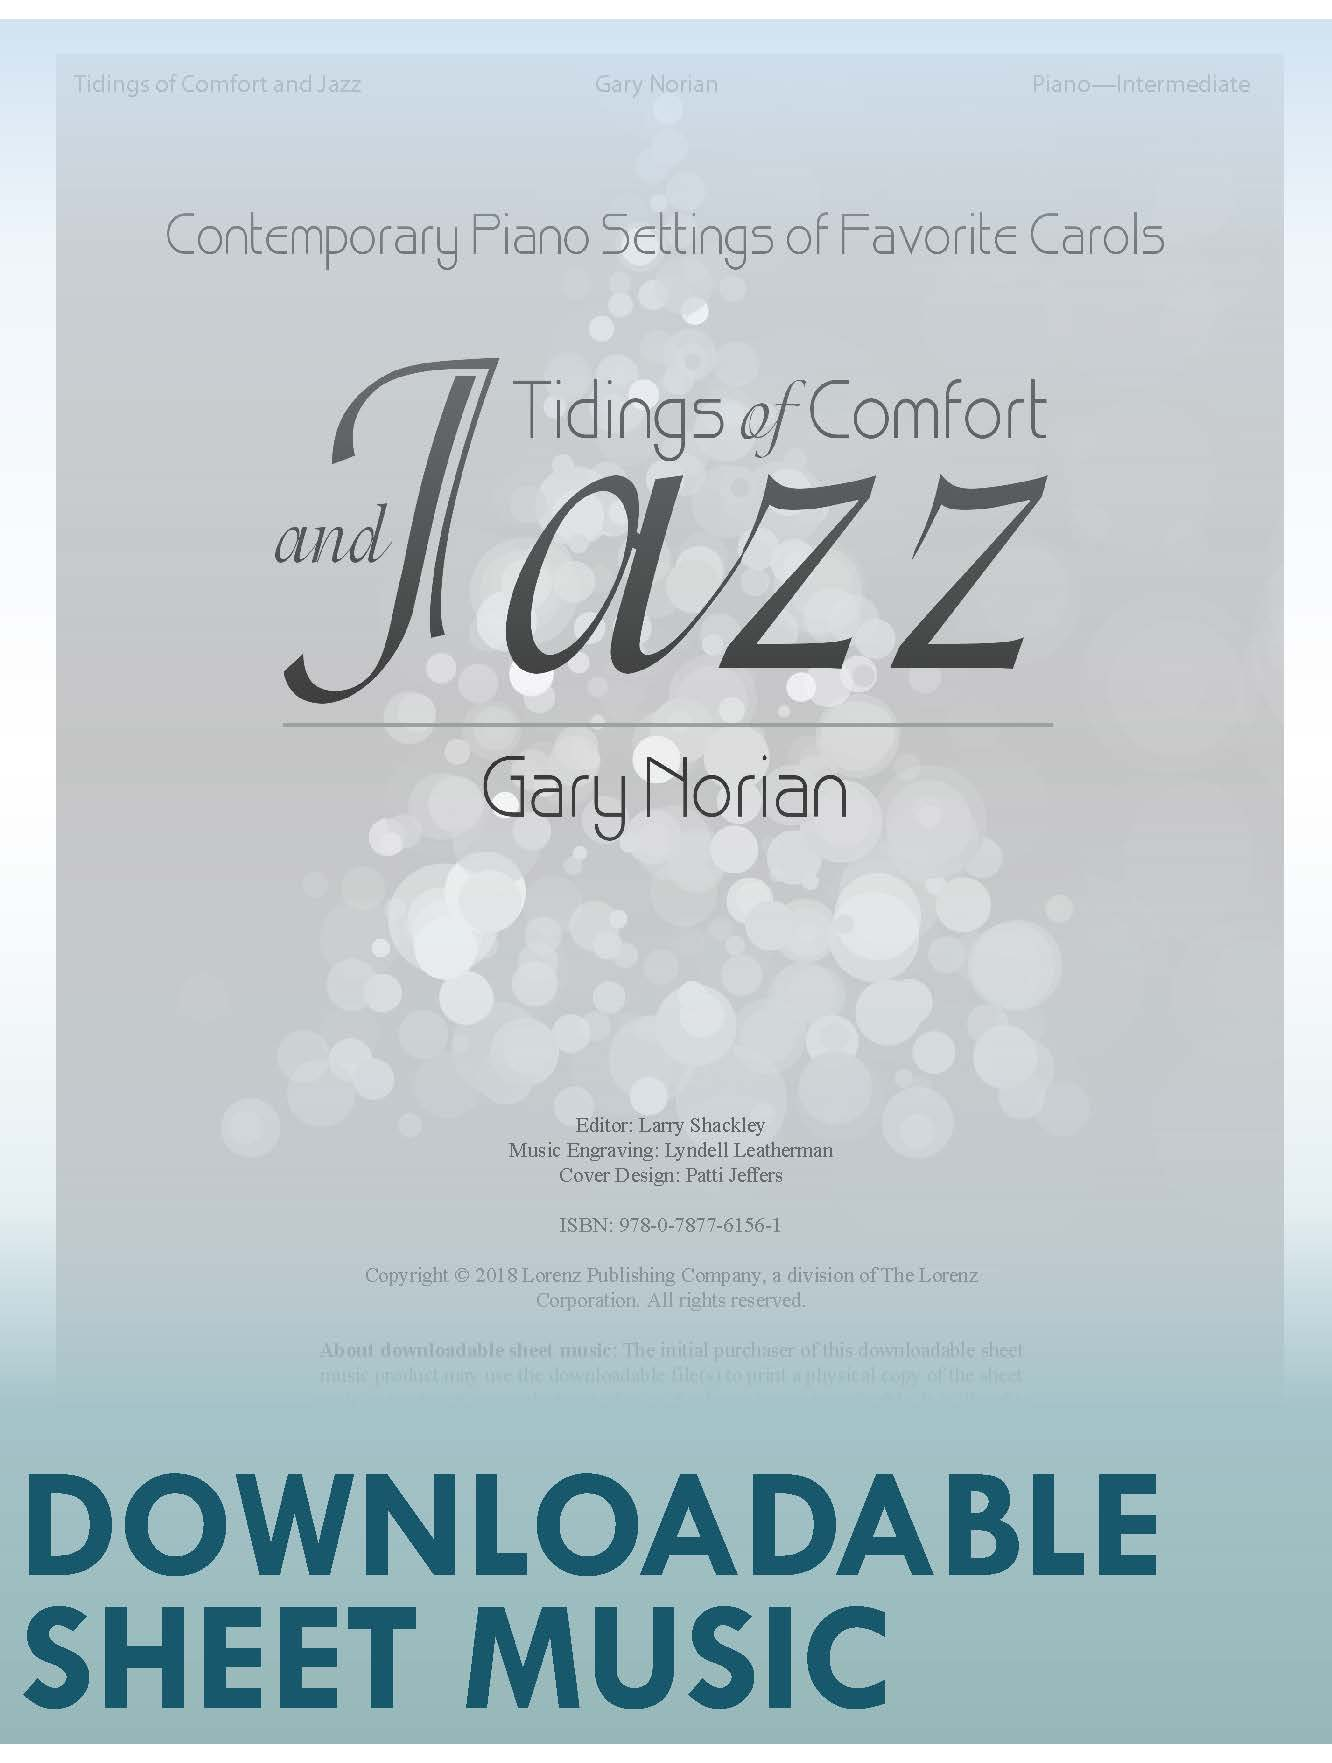 Tidings of Comfort and Jazz - Digital Download